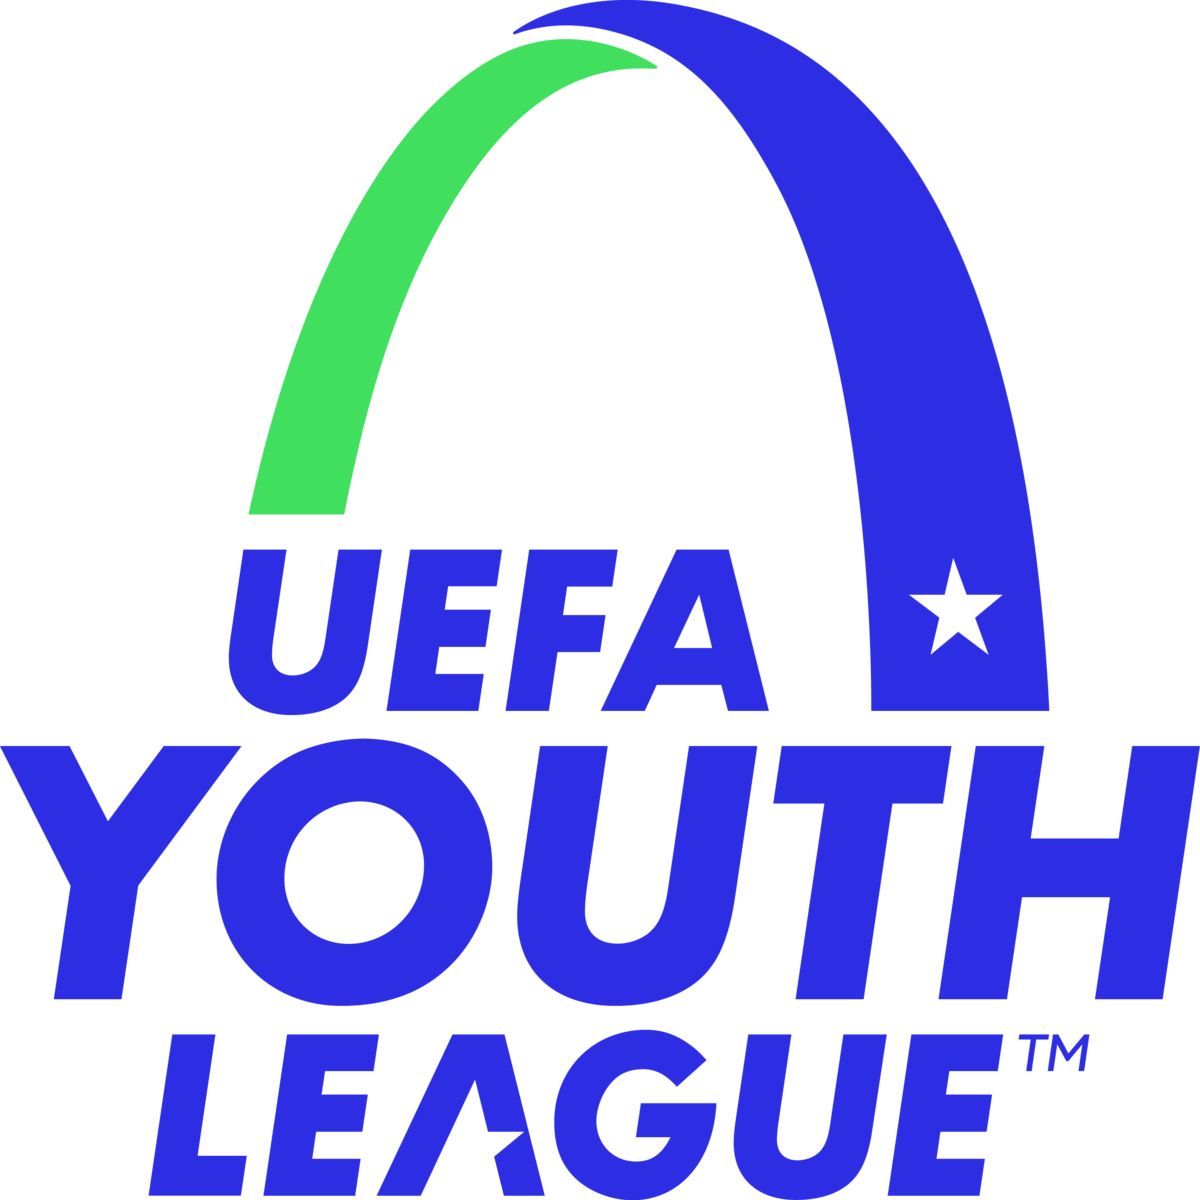 uefa youth league wikipedia